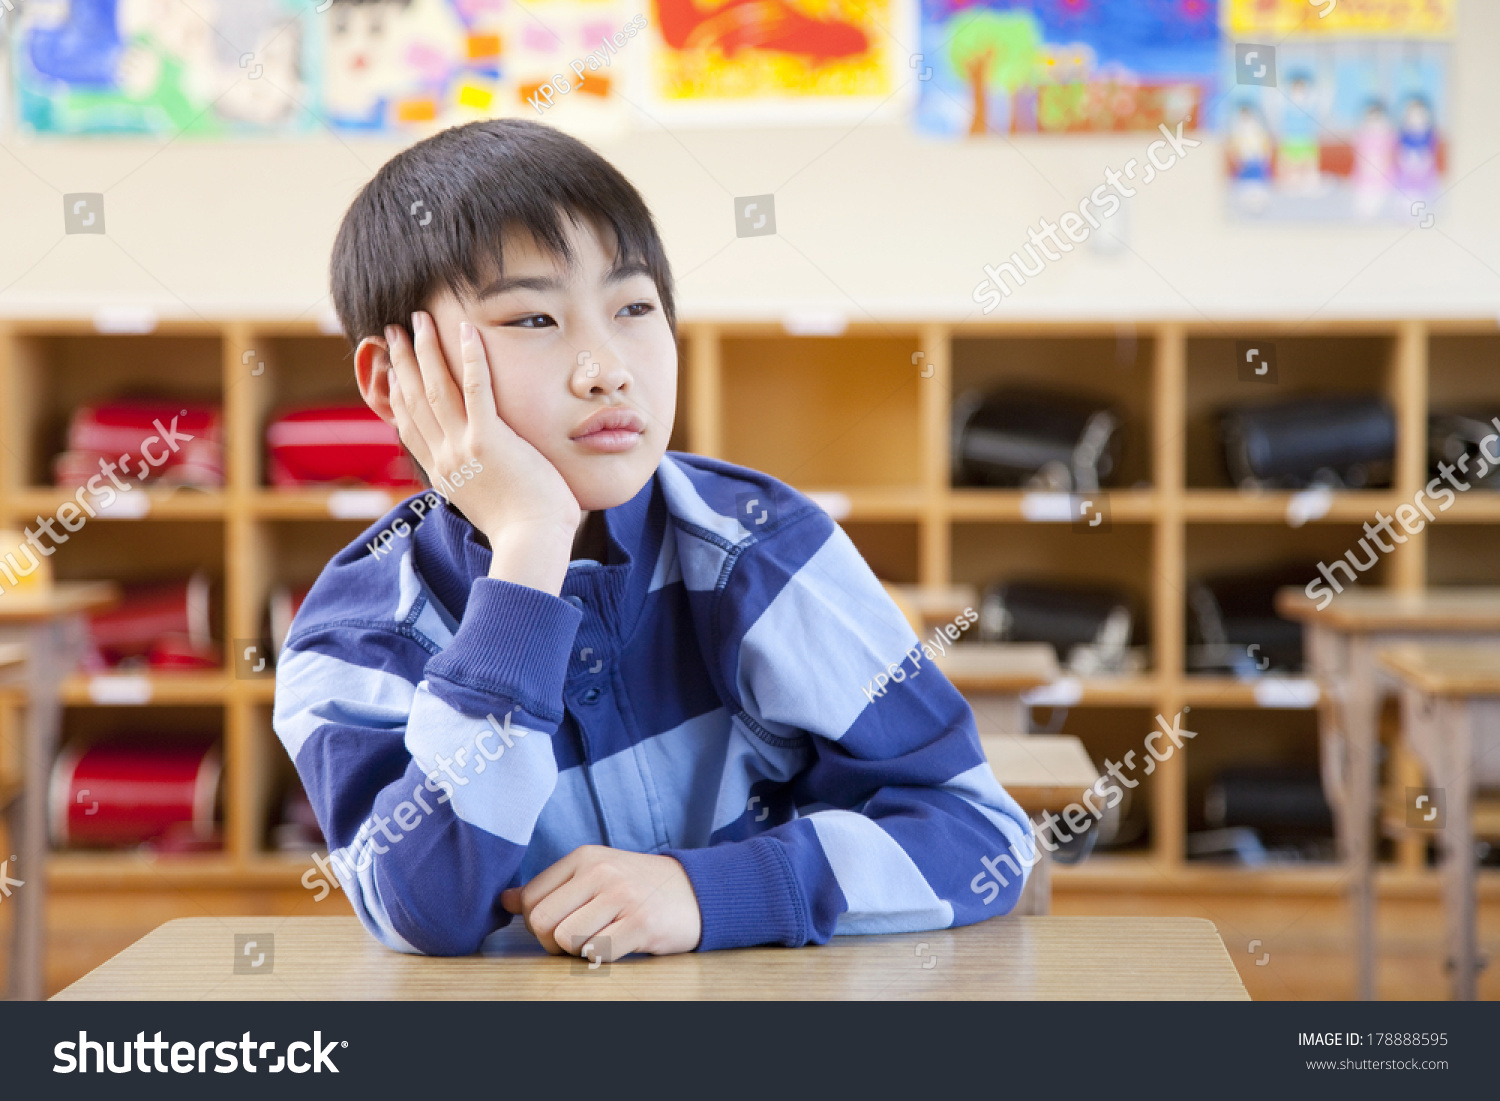 Japanese Elementary Boys Bored Classroom Desk Stock Photo Edit Now 178888595